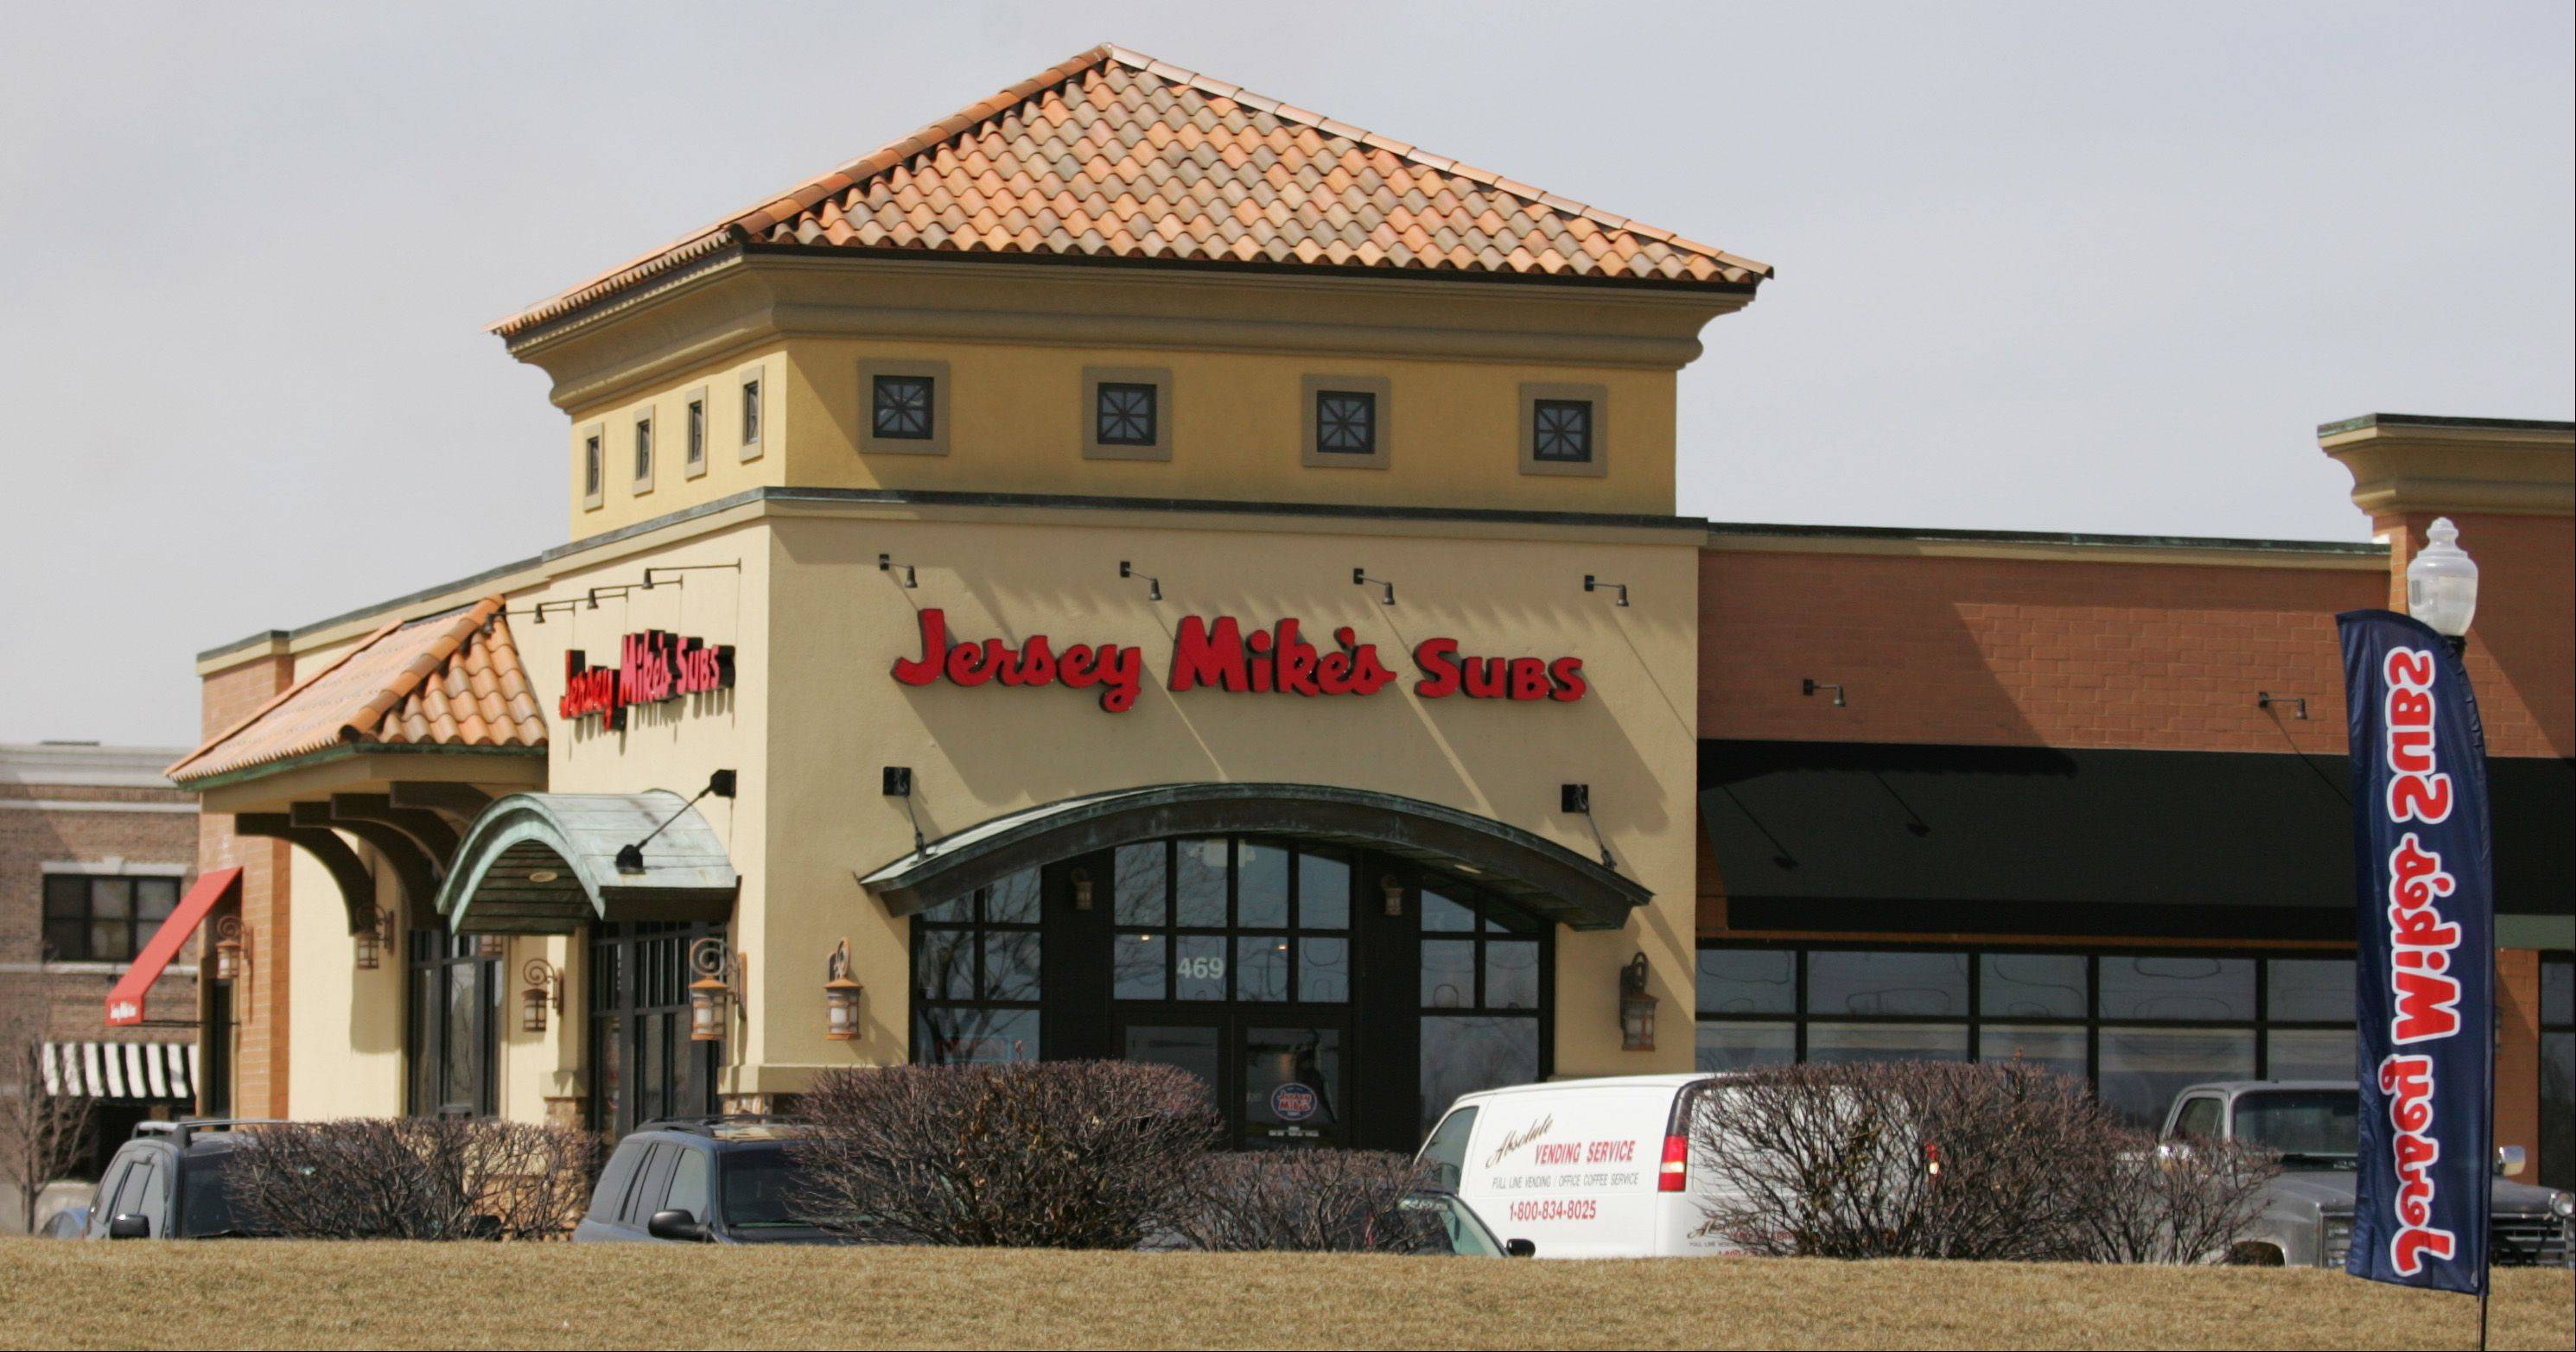 Jersey Mike's Subs franchisee Jim Shipman, who owns stores in St. Charles and Geneva, opened a location in South Elgin April 3.